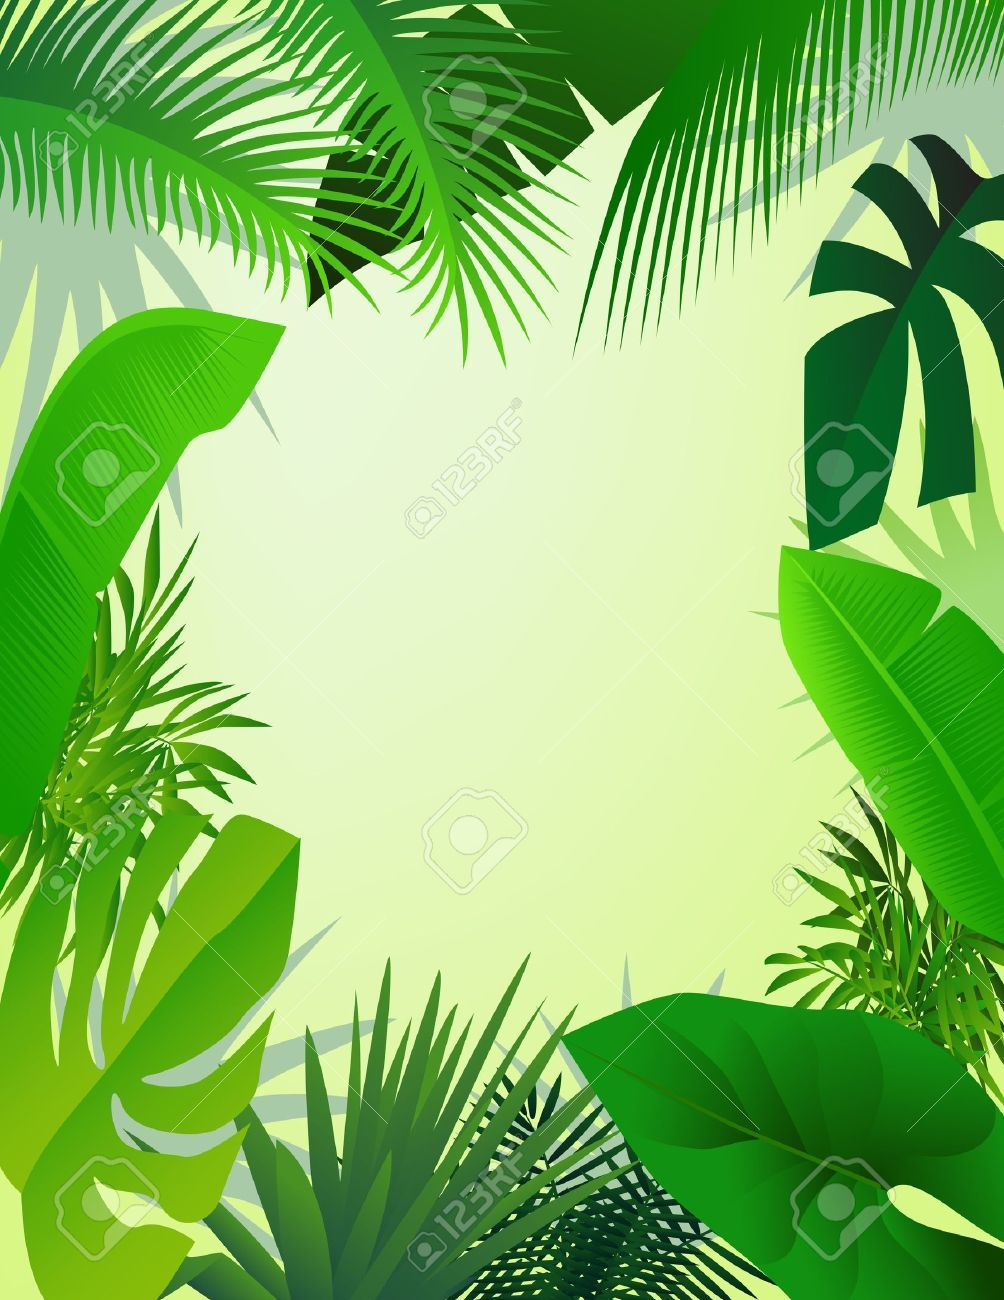 Stock Vector Illustration, Frame, Plant leaves